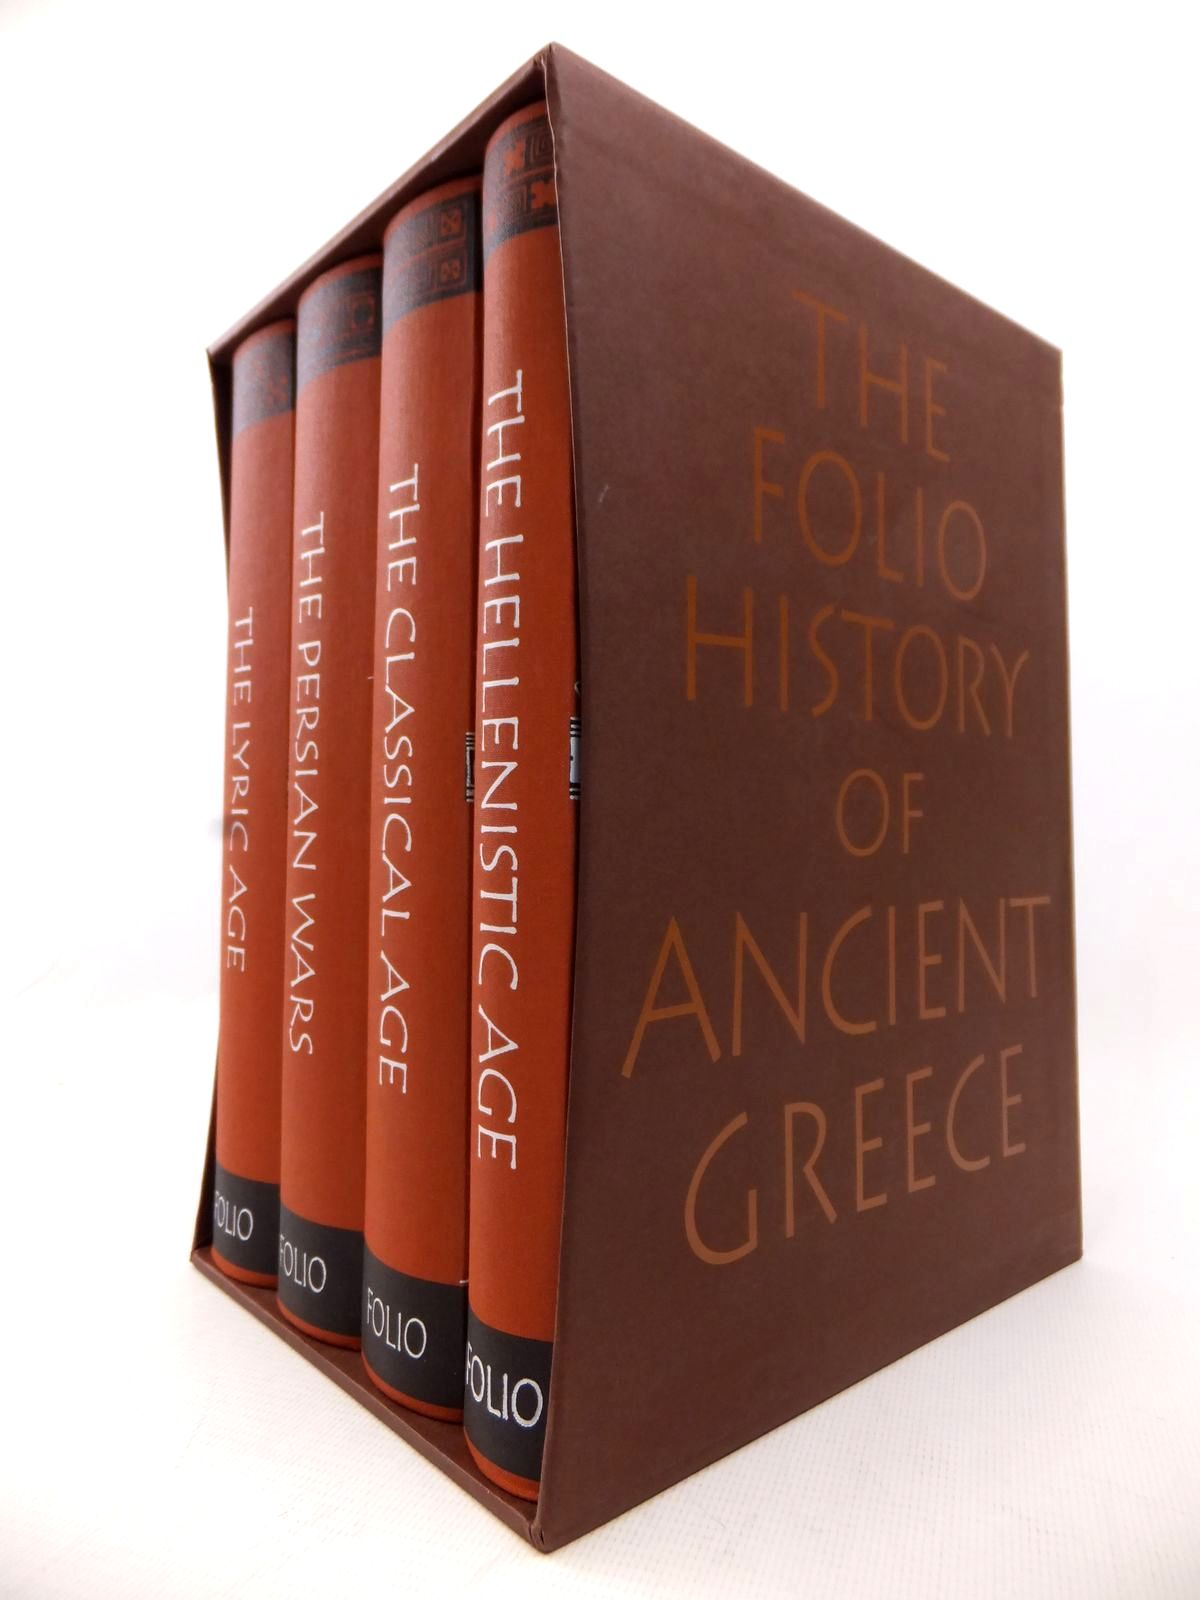 Photo of THE FOLIO HISTORY OF ANCIENT GREECE (4 VOLUMES) published by Folio Society (STOCK CODE: 1813798)  for sale by Stella & Rose's Books